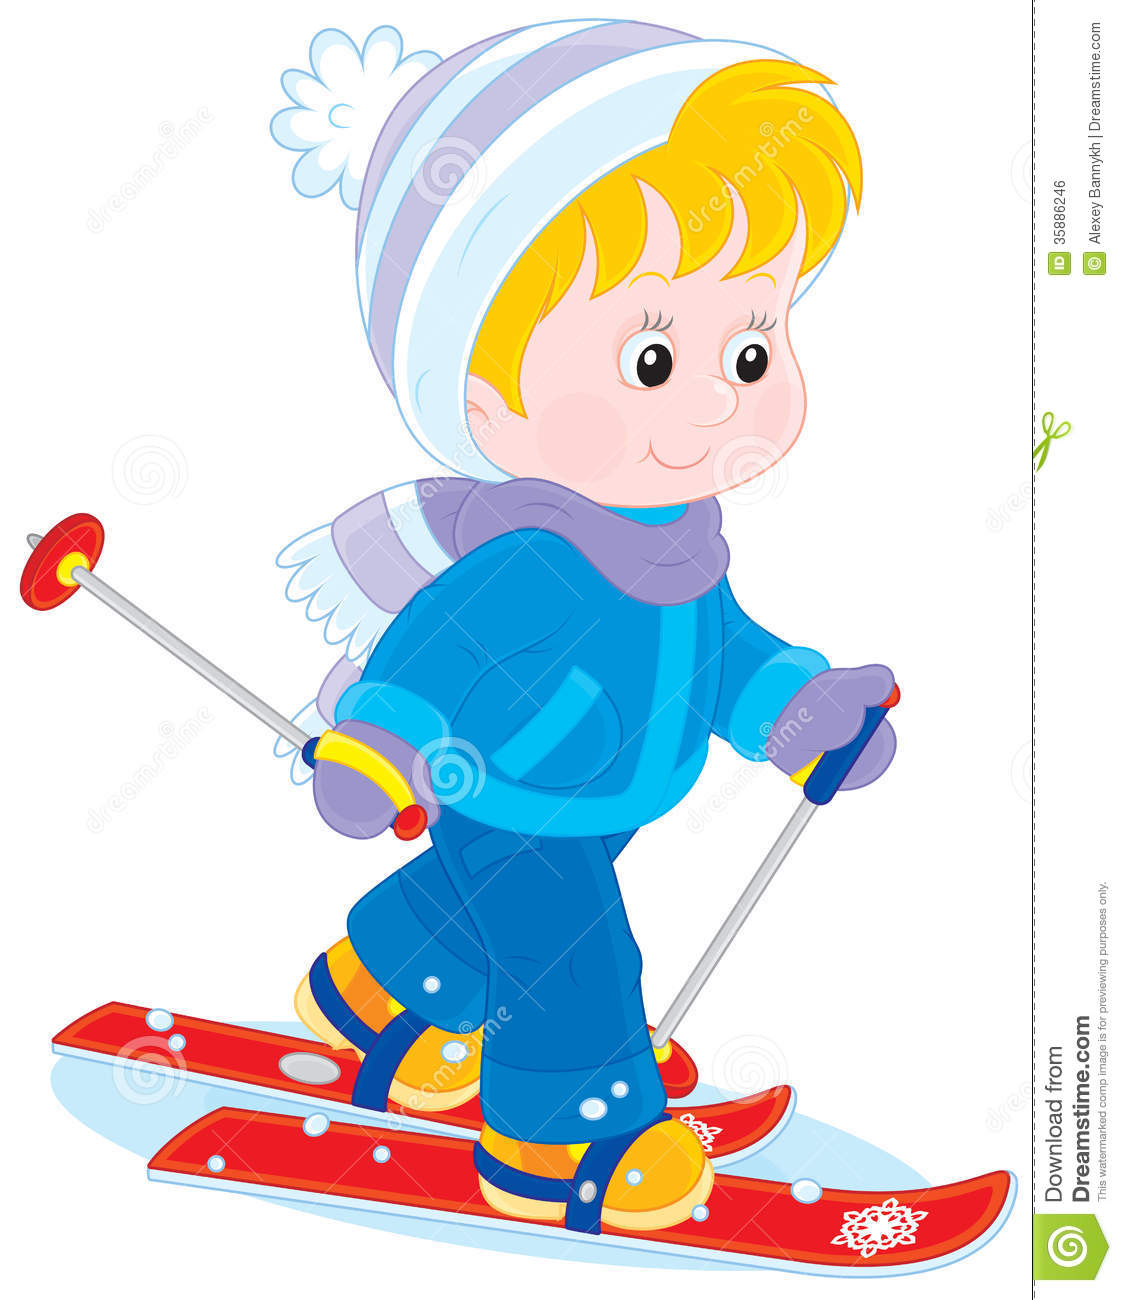 sad-little-girl-clipart-child-skiing-little-boy-girl-walking-skis    Sad Little Girl Clipart